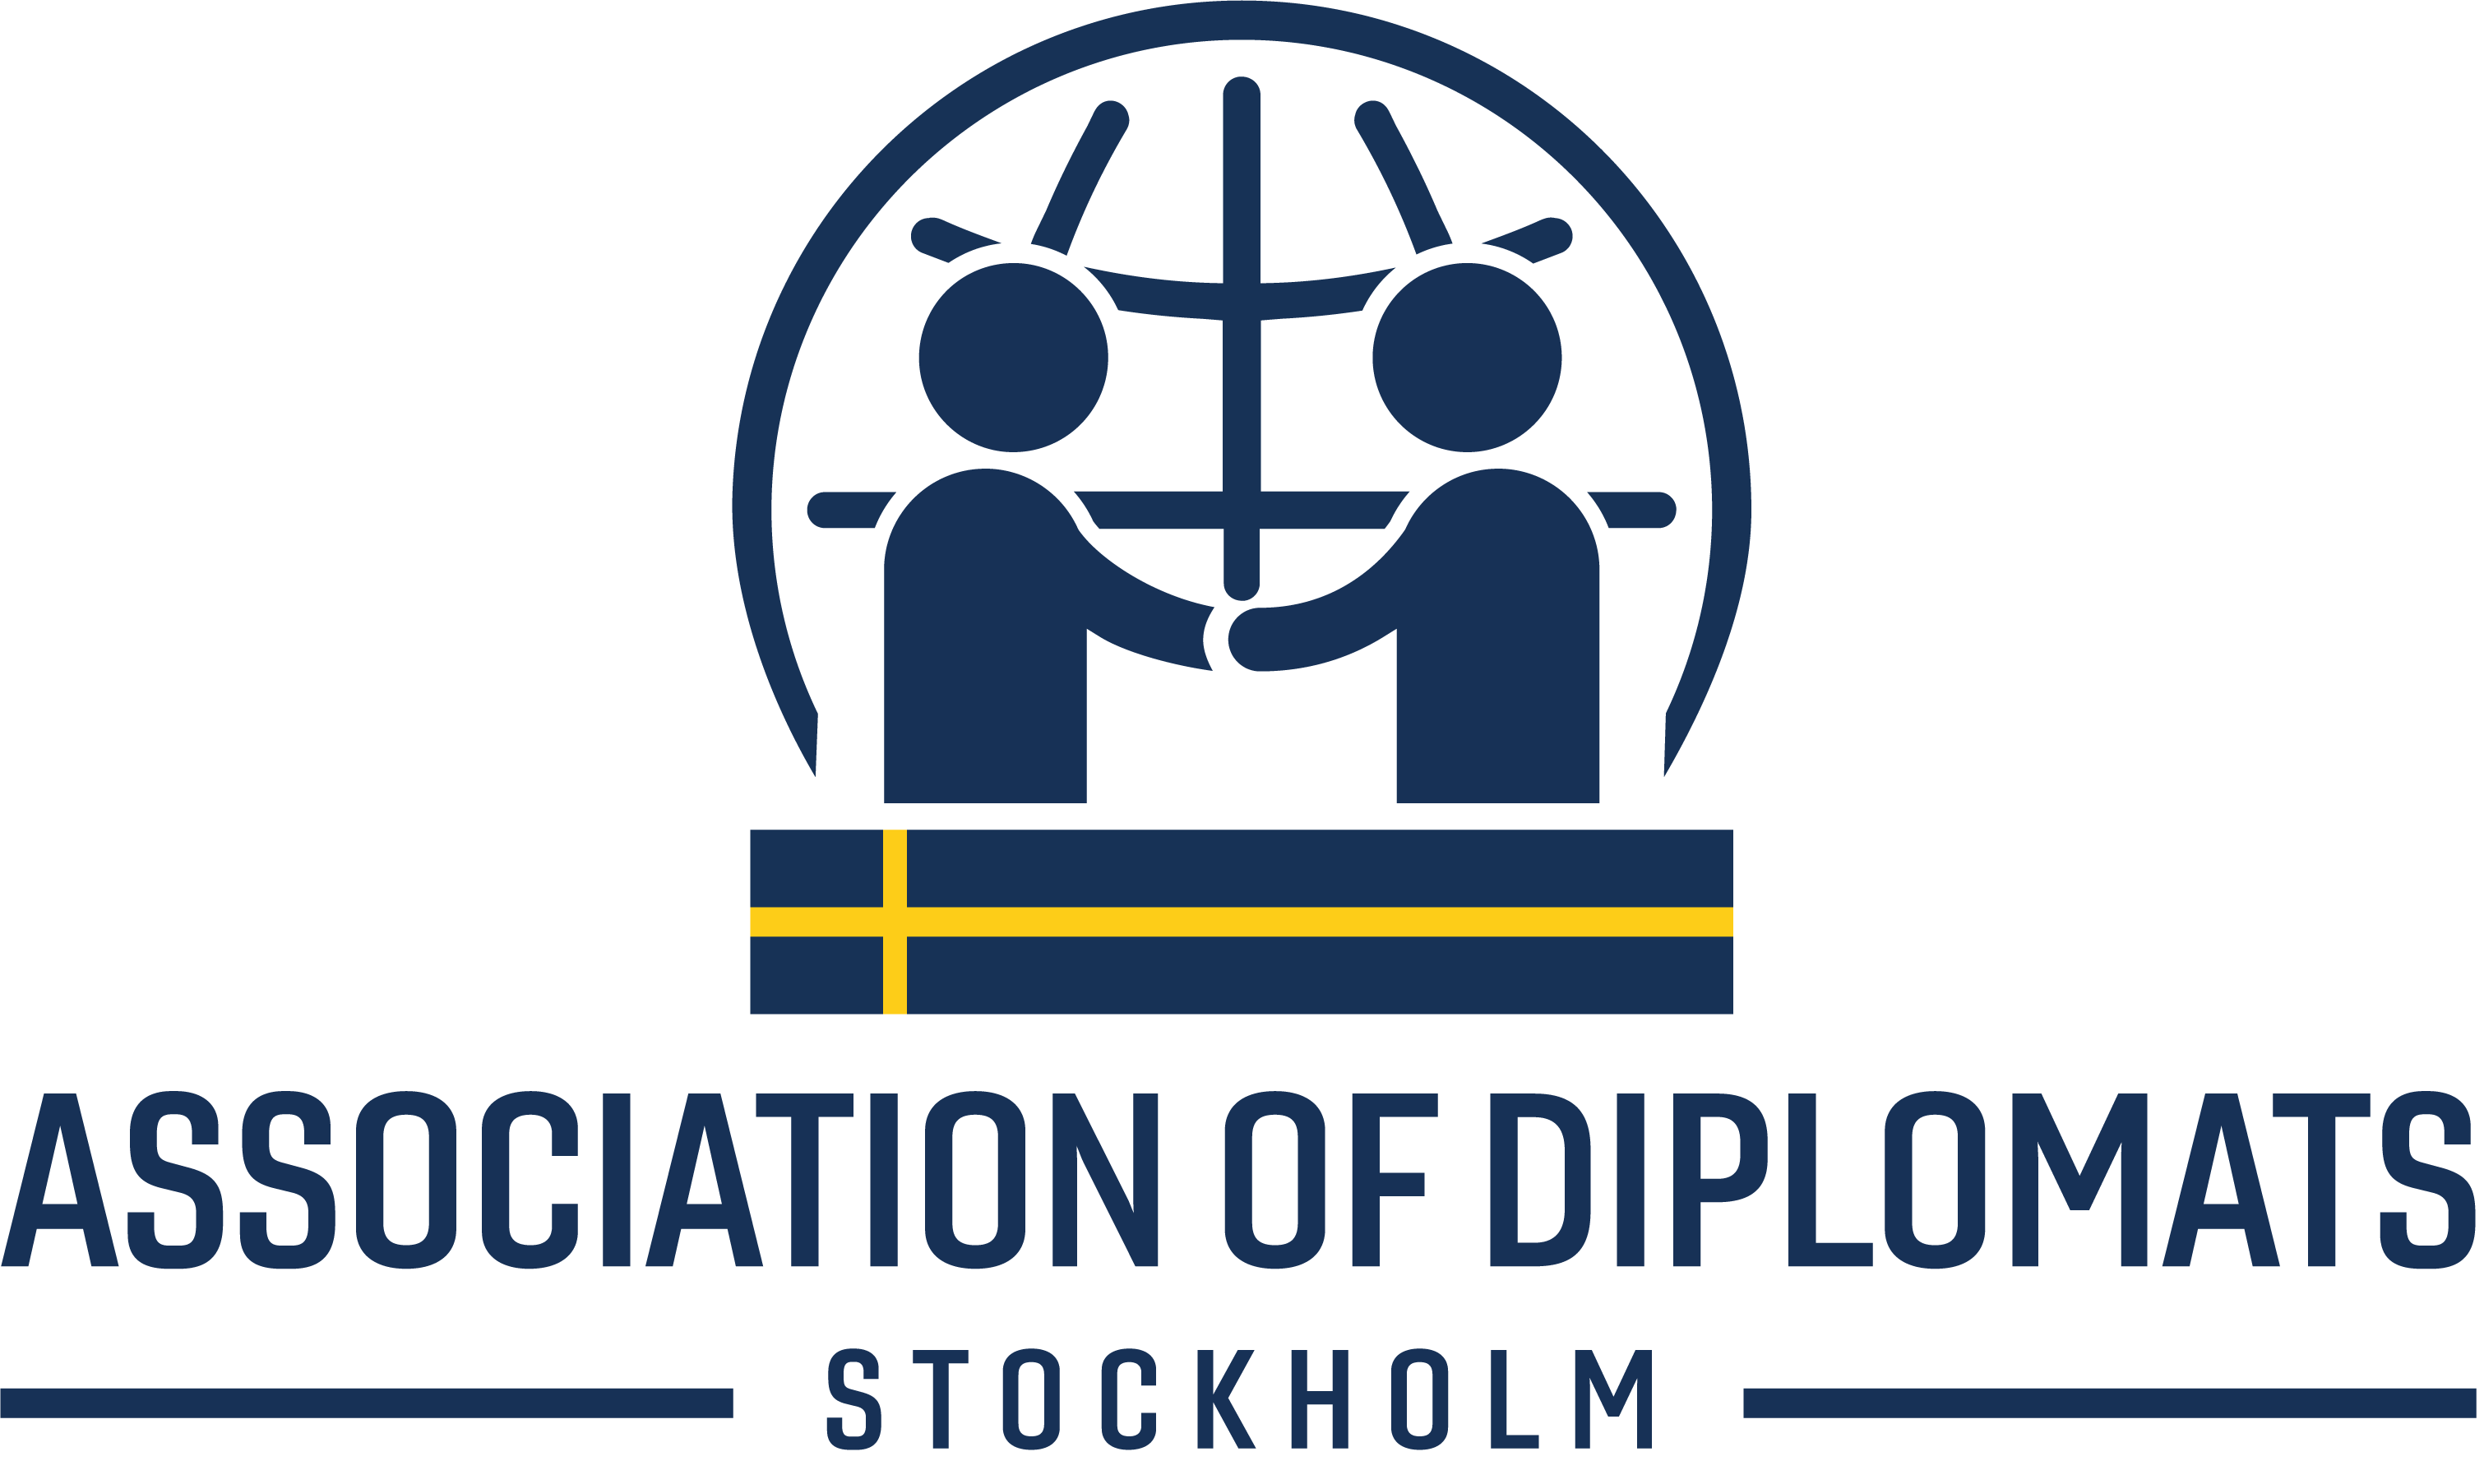 Association of Diplomats Stockholm